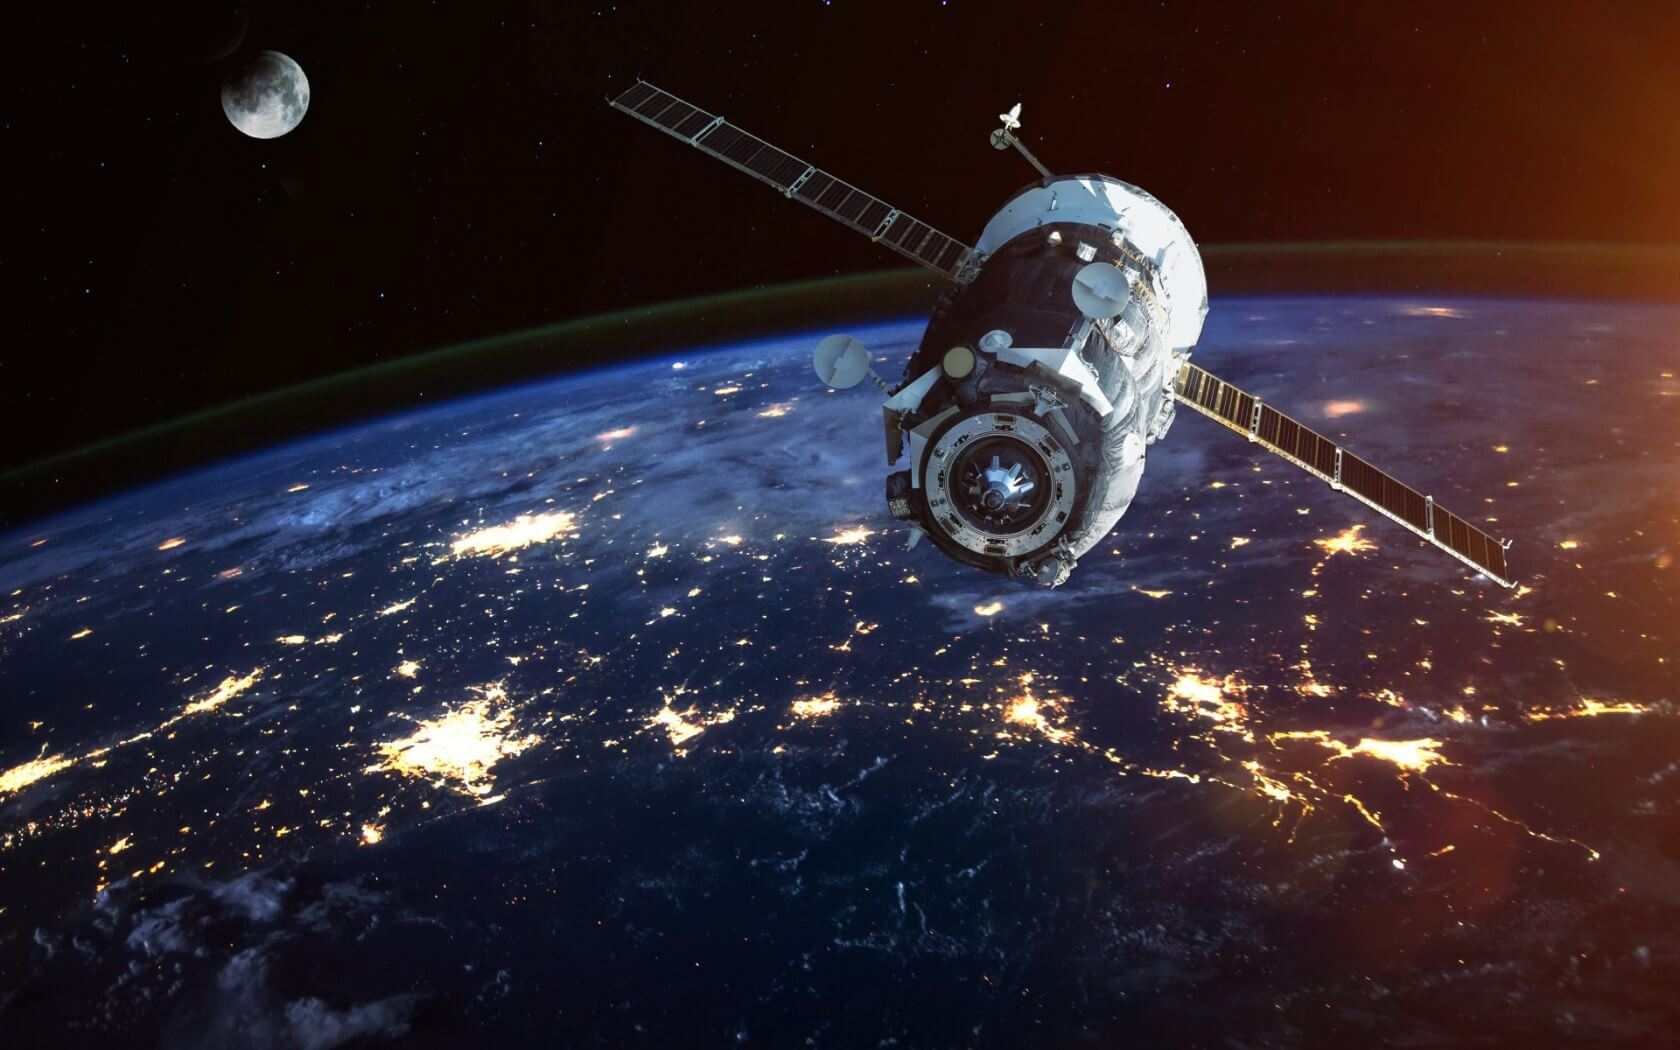 France wants to mount guns and lasers on its satellites for self-defense purposes